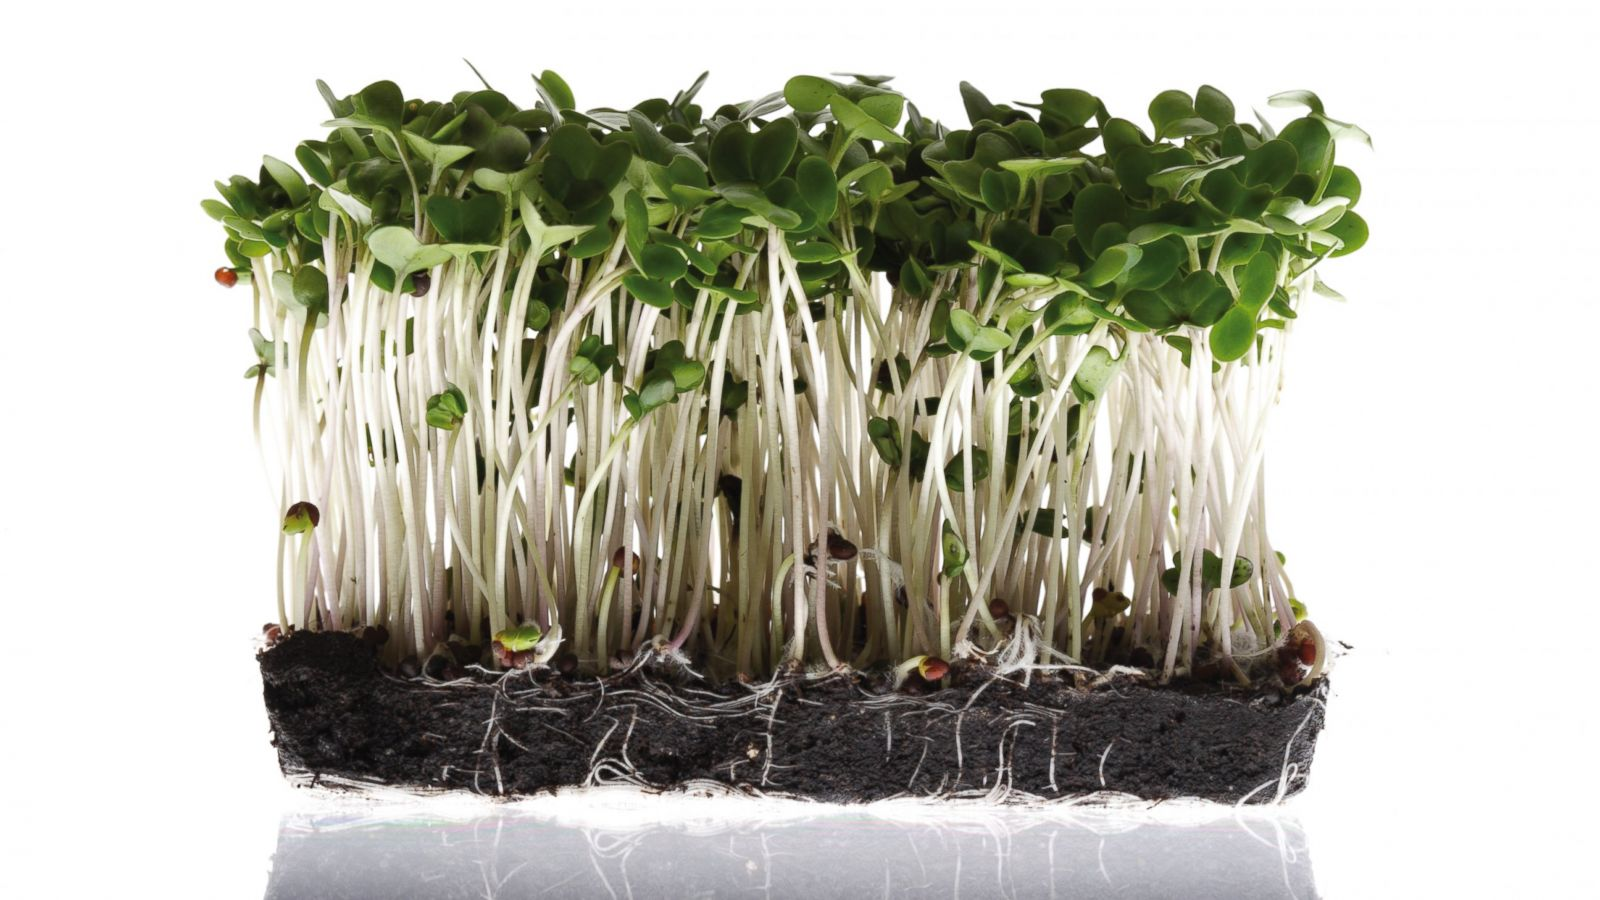 Chemical In Broccoli Sprouts May Treat >> Why Broccoli Sprouts May Be A True Disease Fighting Super